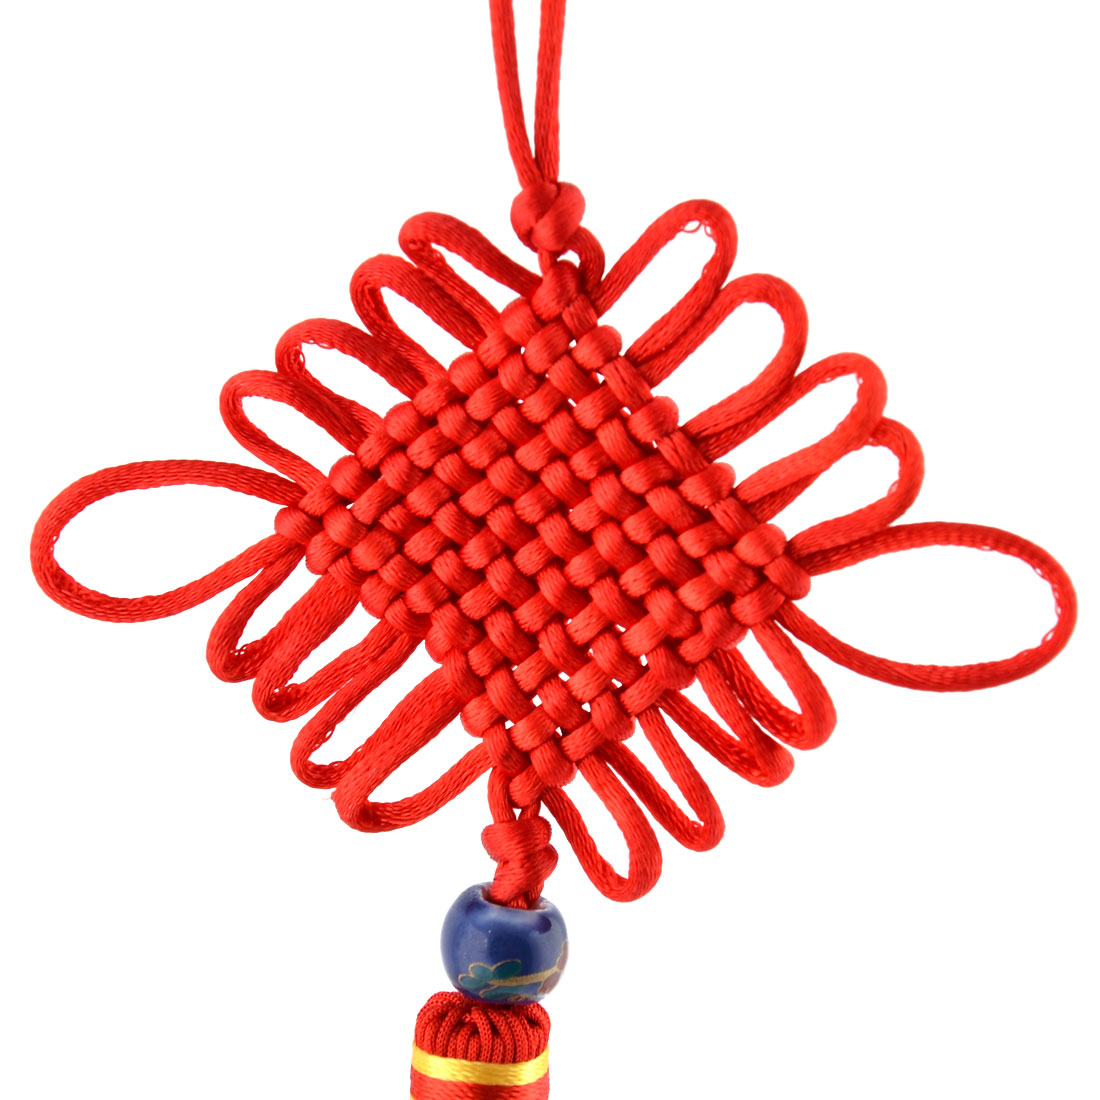 Home Vehicle Polyester Handmade Tassel Bead Ornament Crafting Chinese Knot Red - image 1 of 3